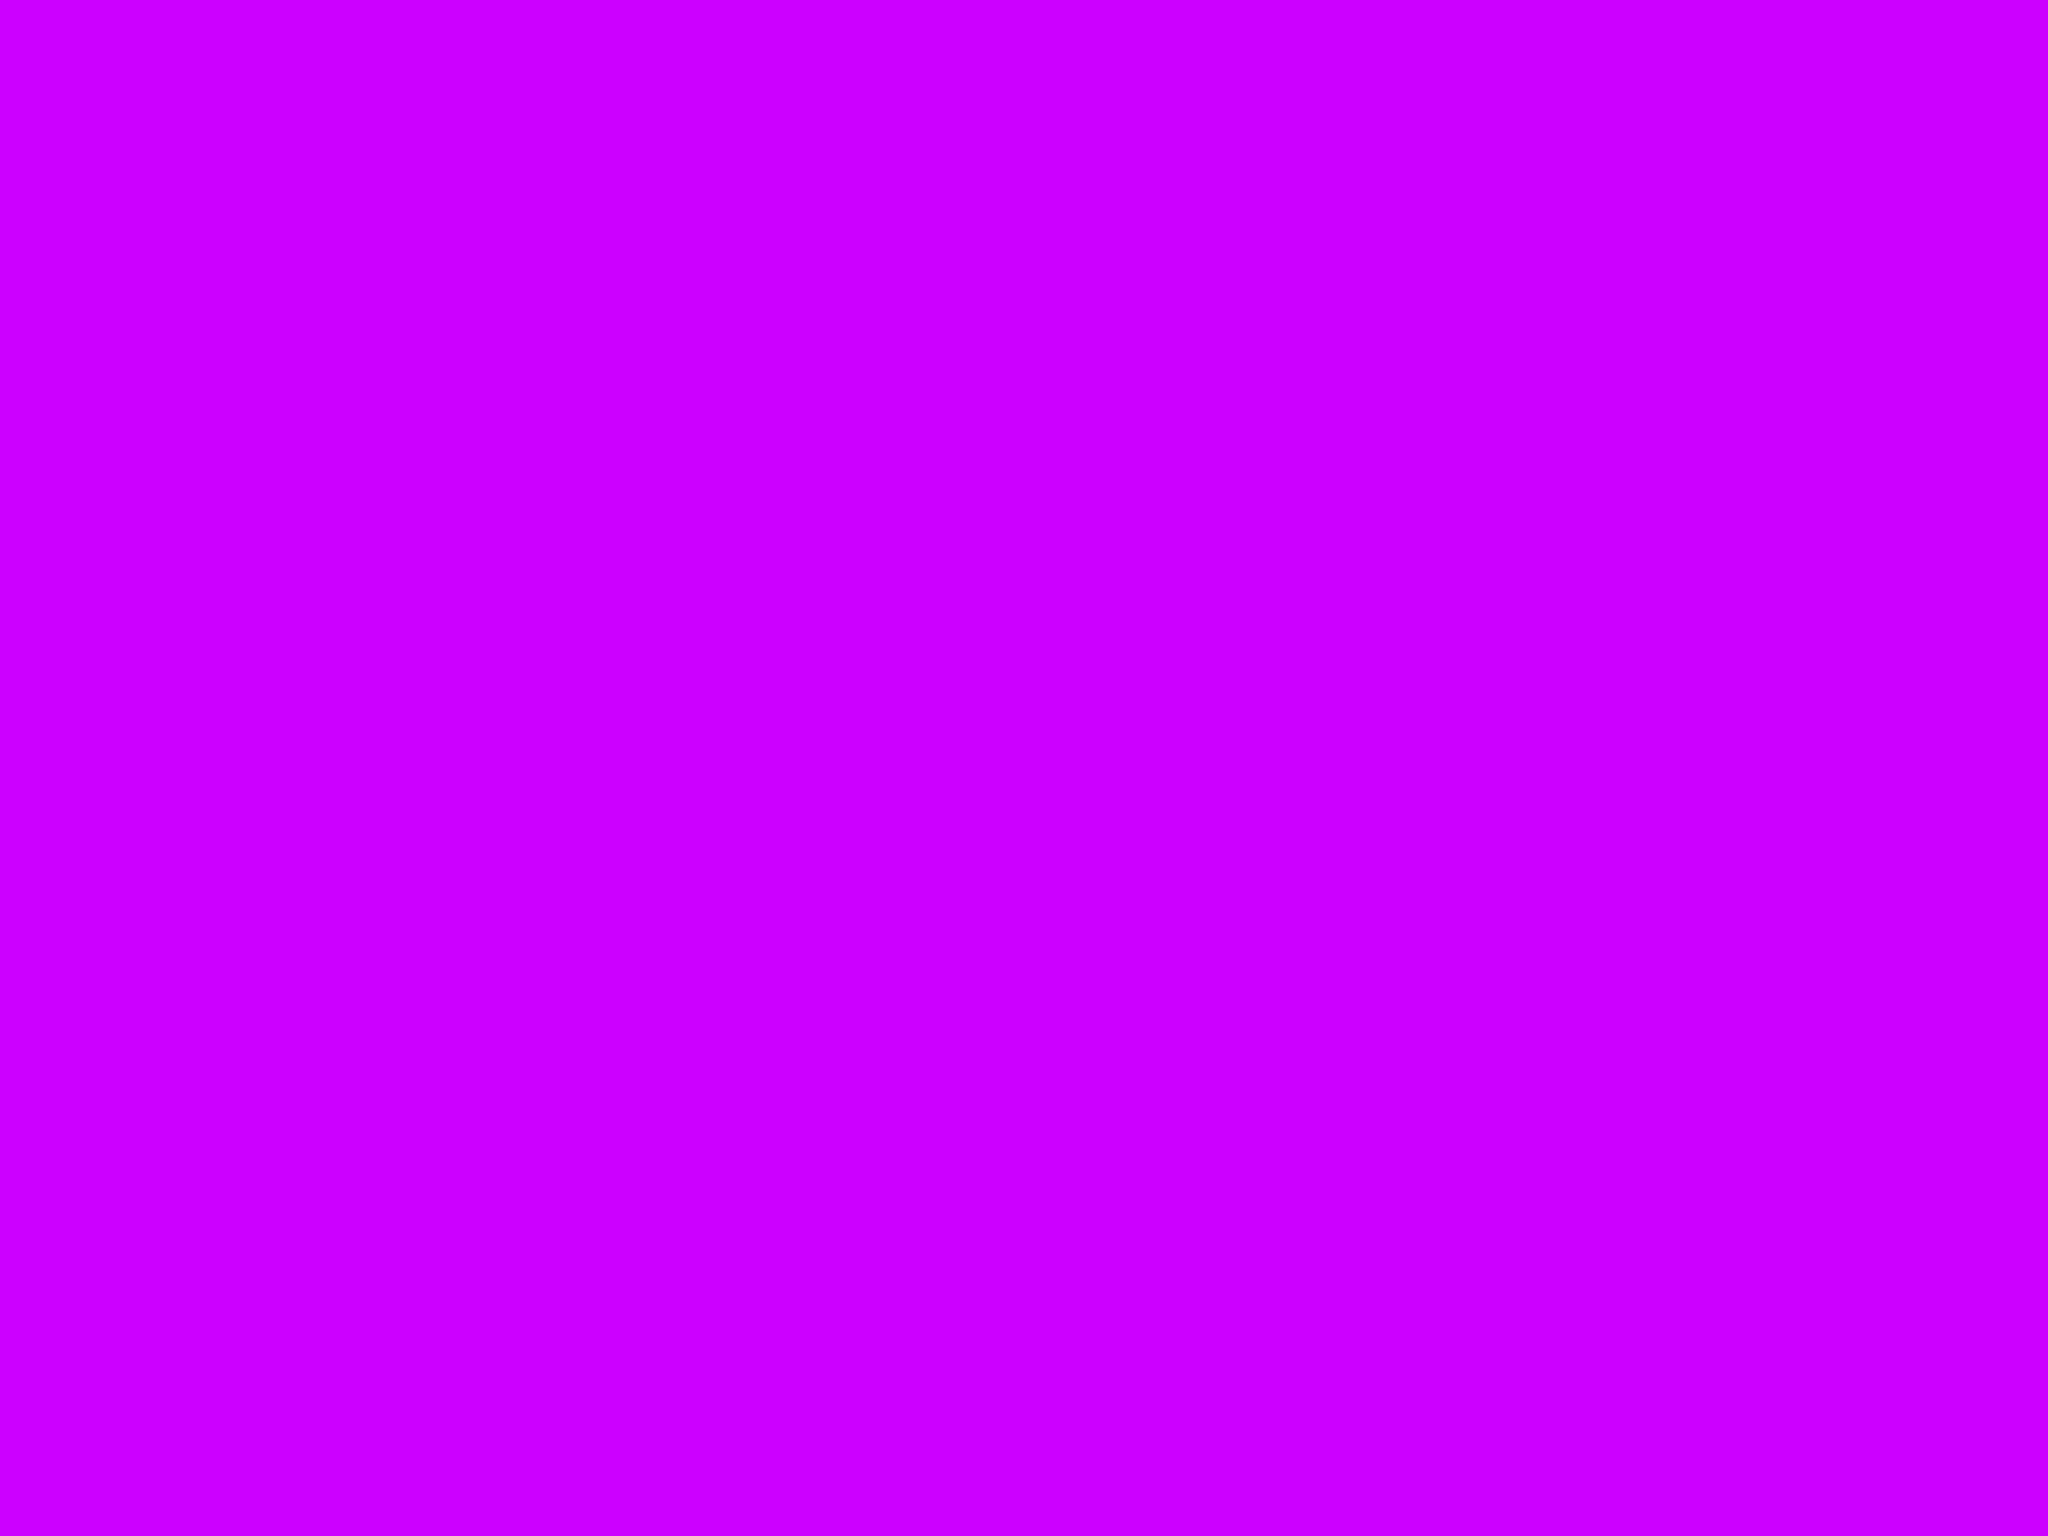 2048x1536 Vivid Orchid Solid Color Background